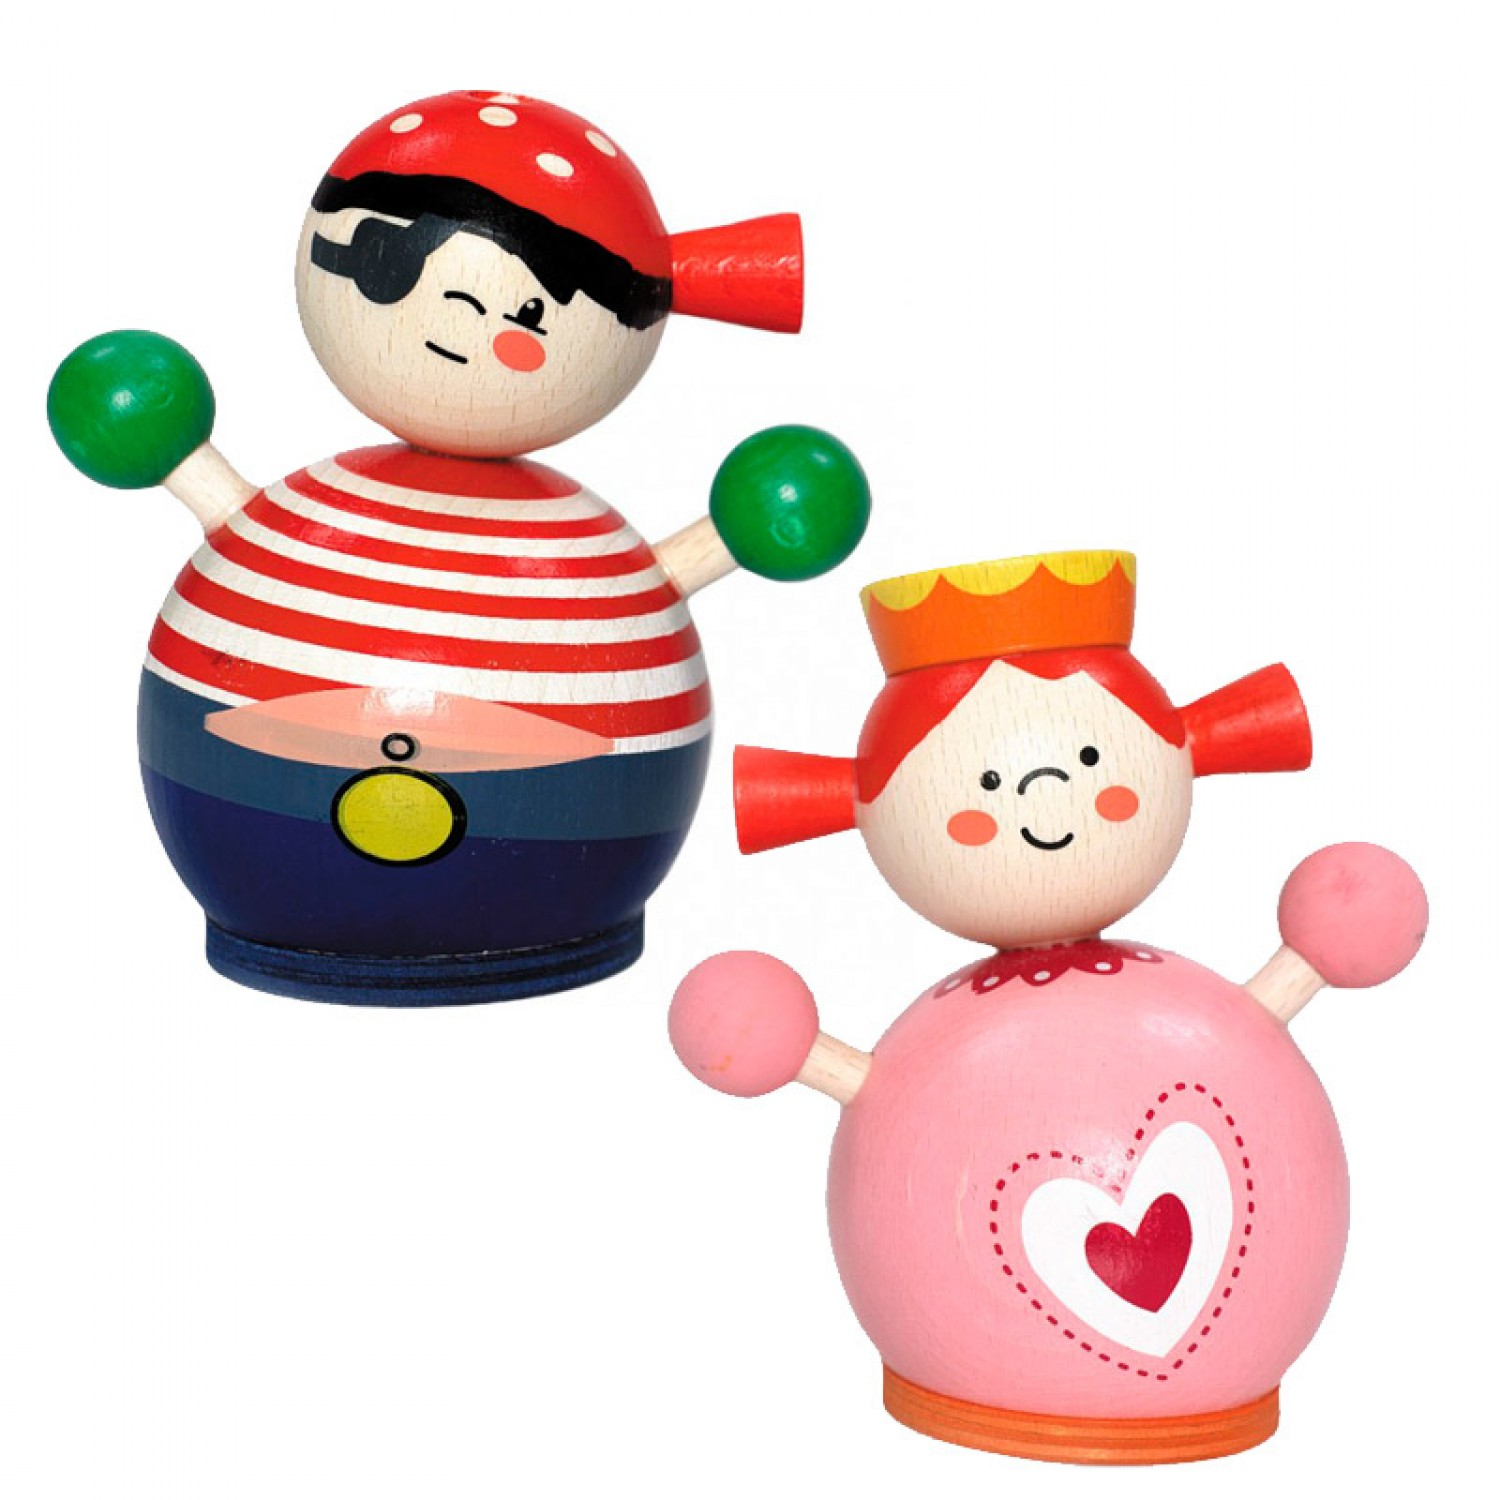 Holzspielzeug Baby Wooden Money Box Princess And Pirate